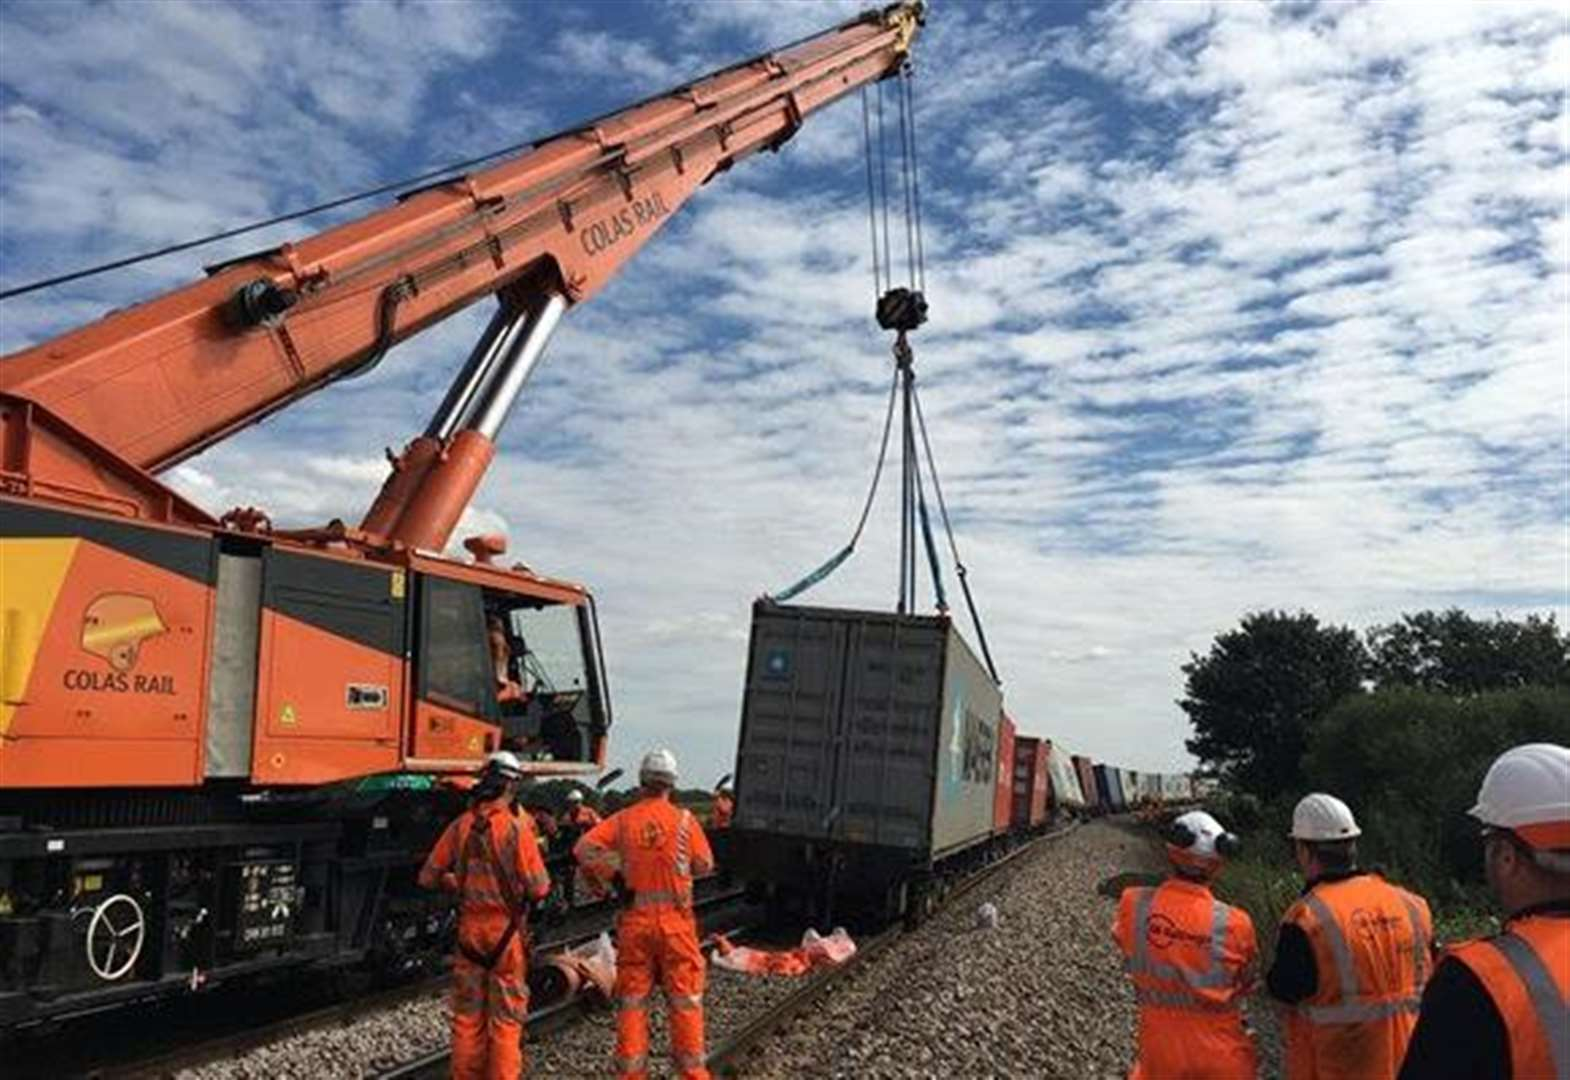 Poor maintenance has been blamed for a freight train derailment between Manea and Ely which caused massive disruption for Fenland passengers